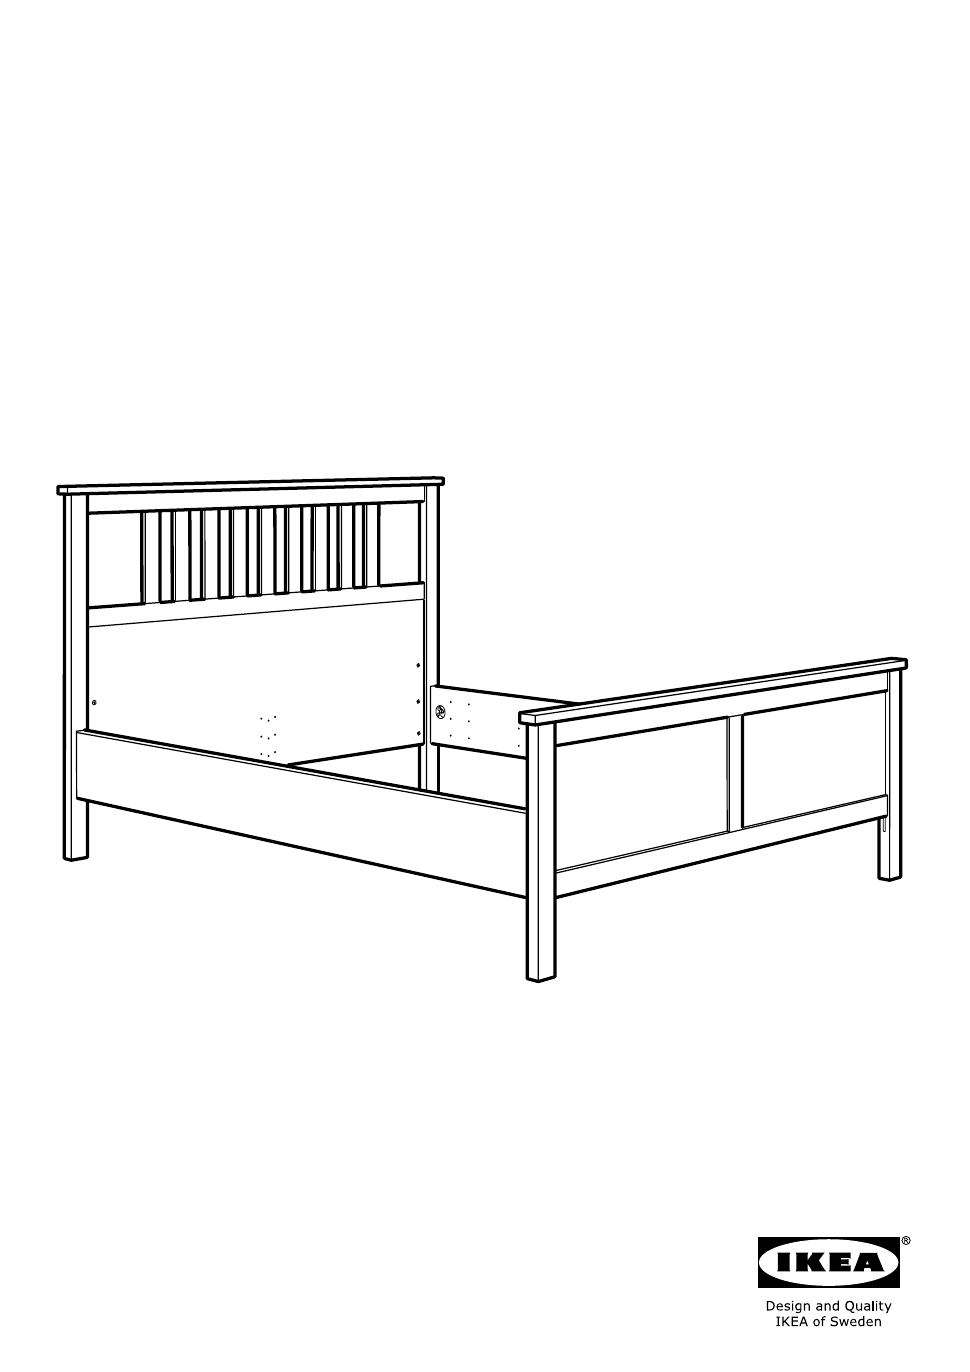 Ikea Hemnes Bed Frame Assembly Instruction Free Pdf